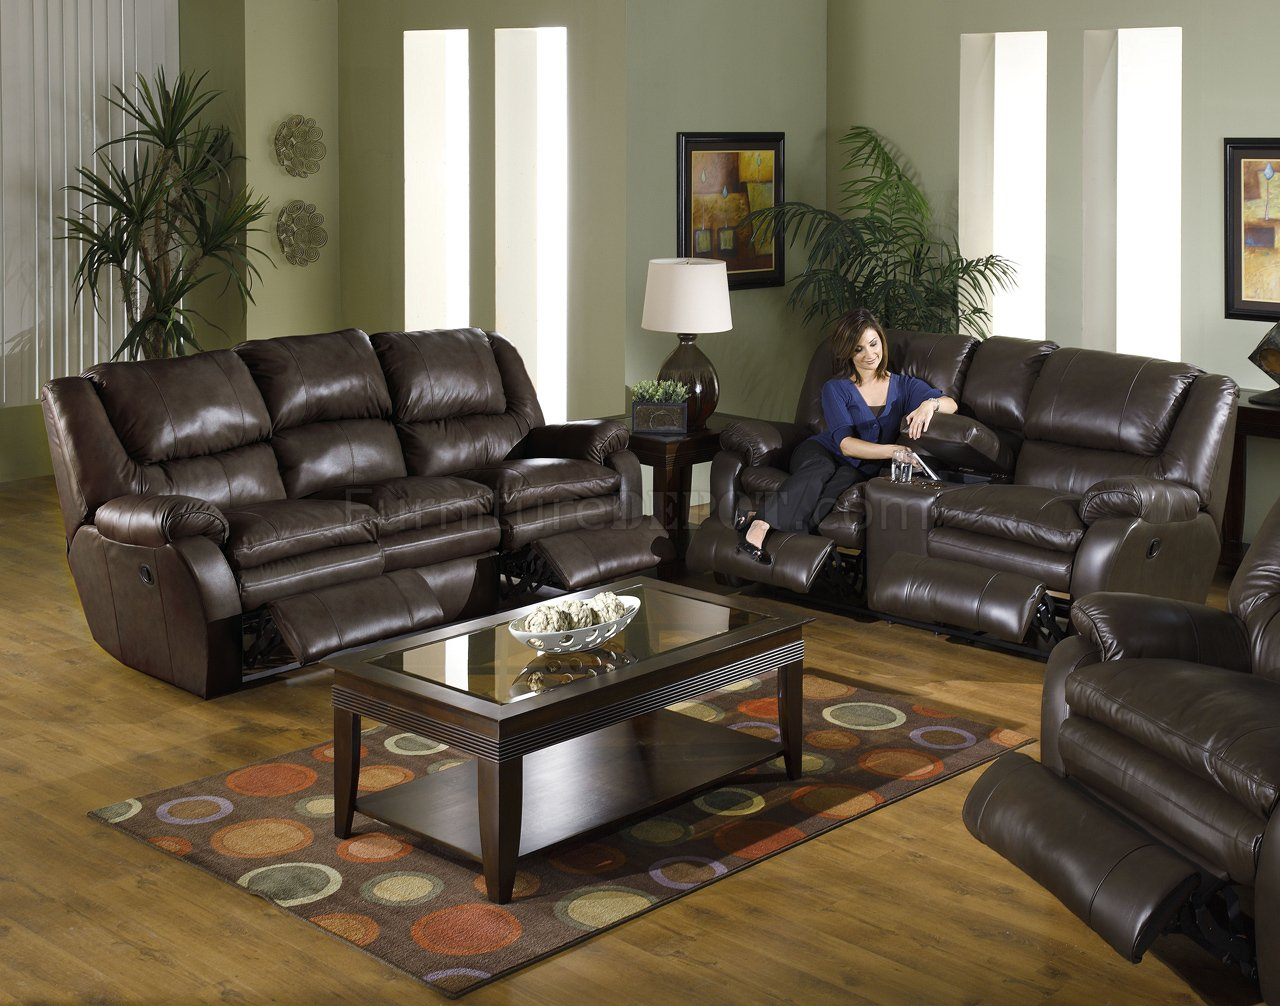 & Catnapper Coffee Top Grain Leather Allegro Reclining Sofa Set islam-shia.org